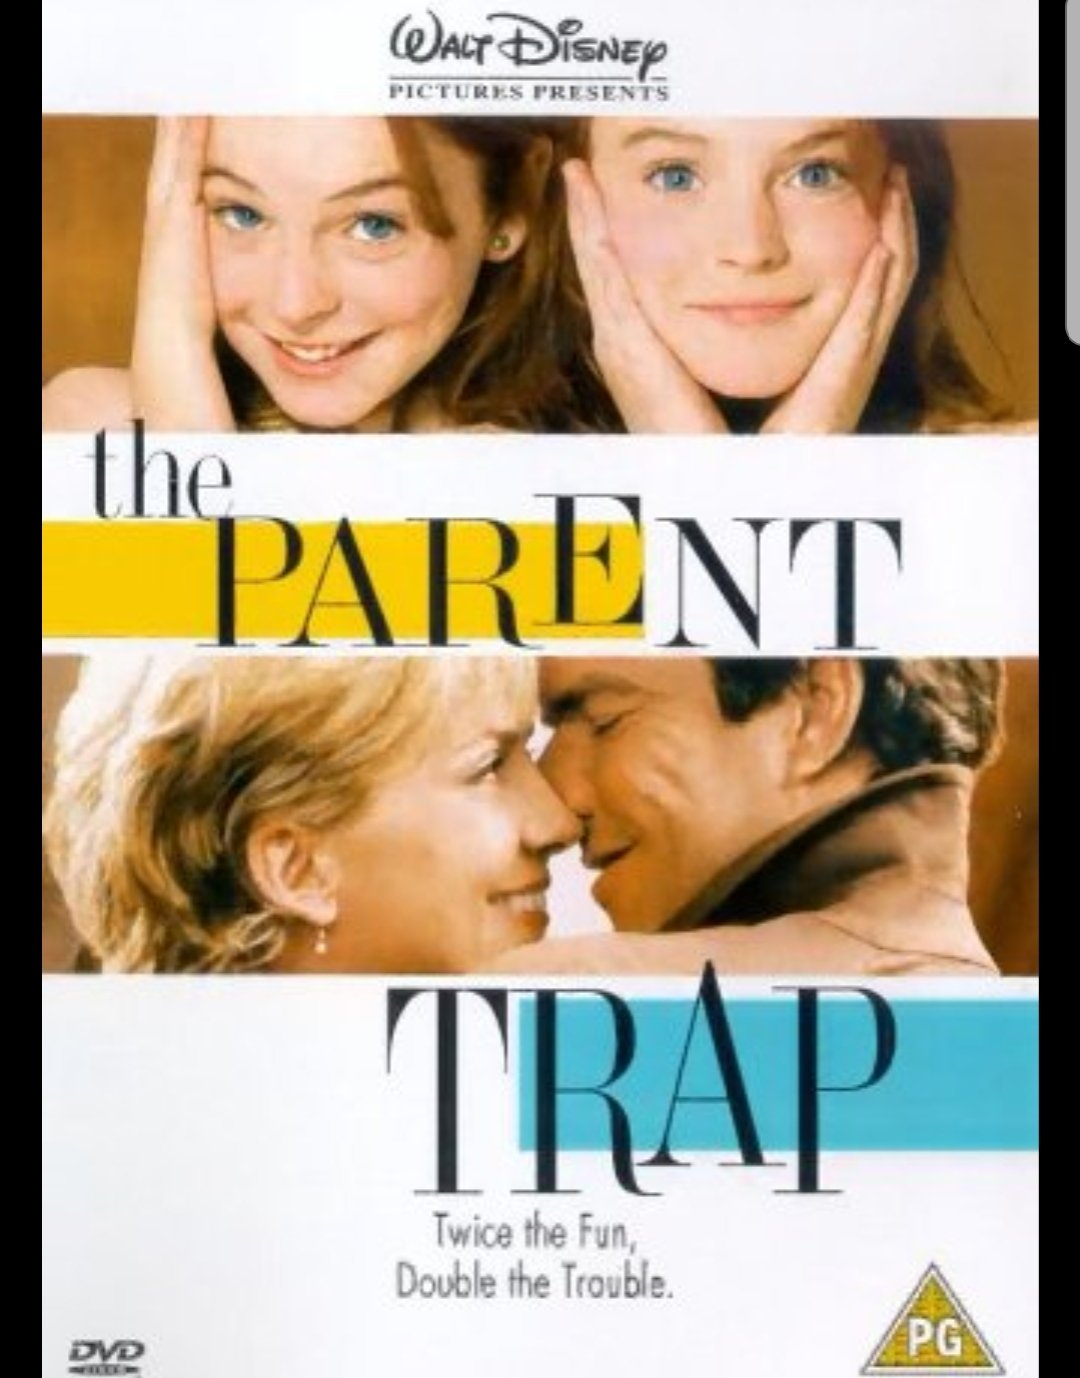 An advice column by Elizabeth James and Nick Parker, the Mom and Dad in The Parent Trap (the 1998 remake, starring Lindsay Lohan).